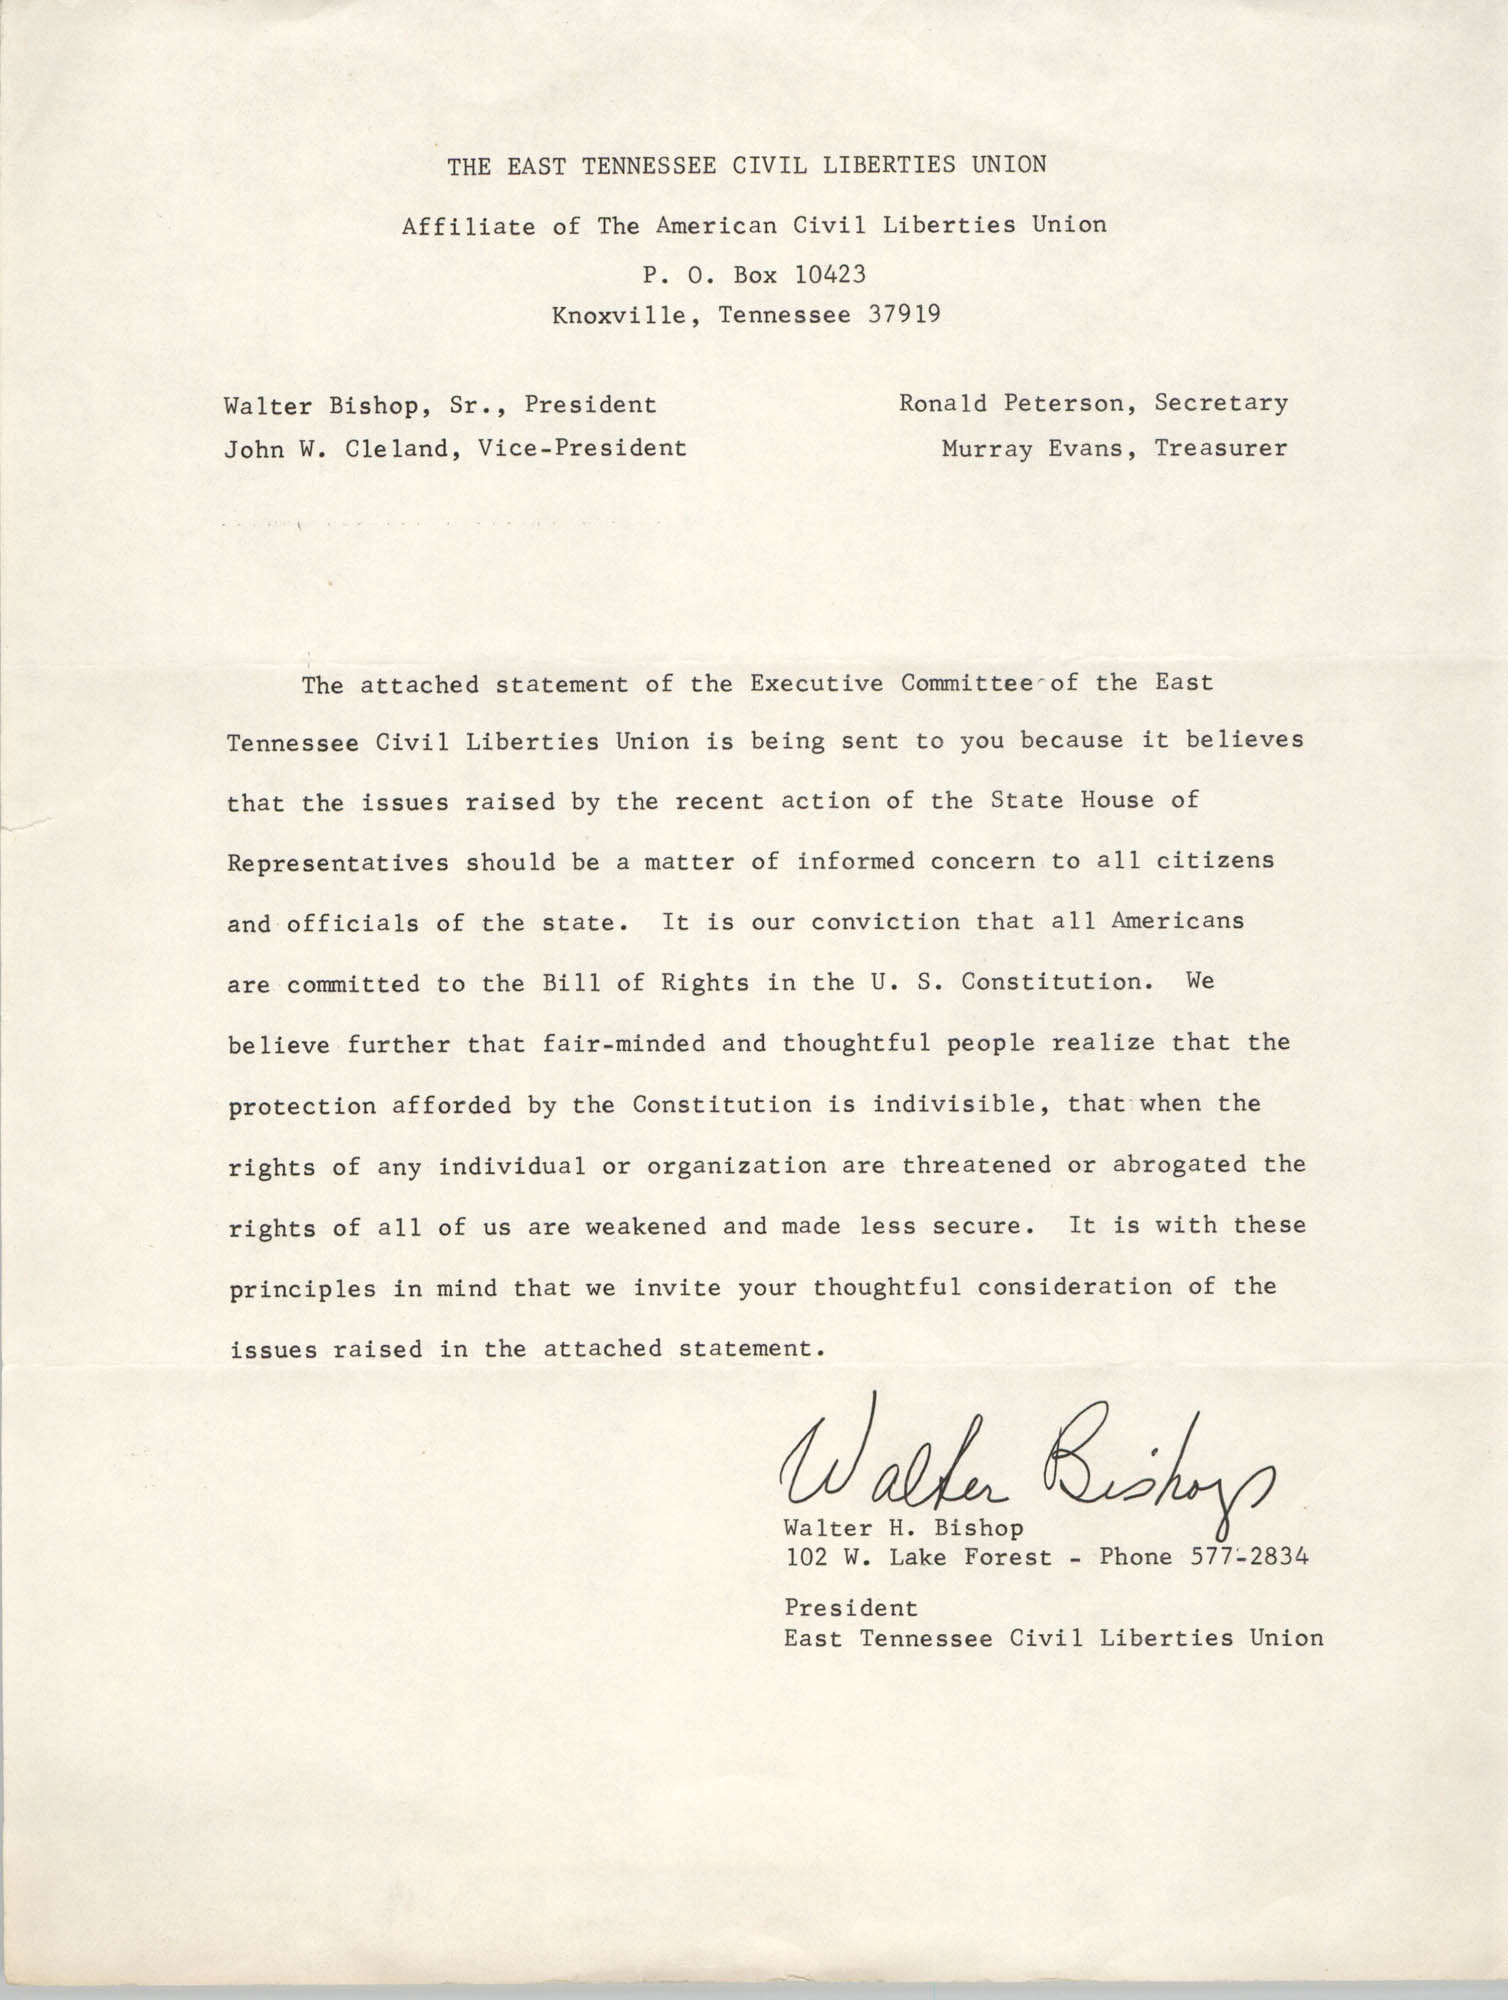 Statement from Walter H. Bishop, April 11, 1967